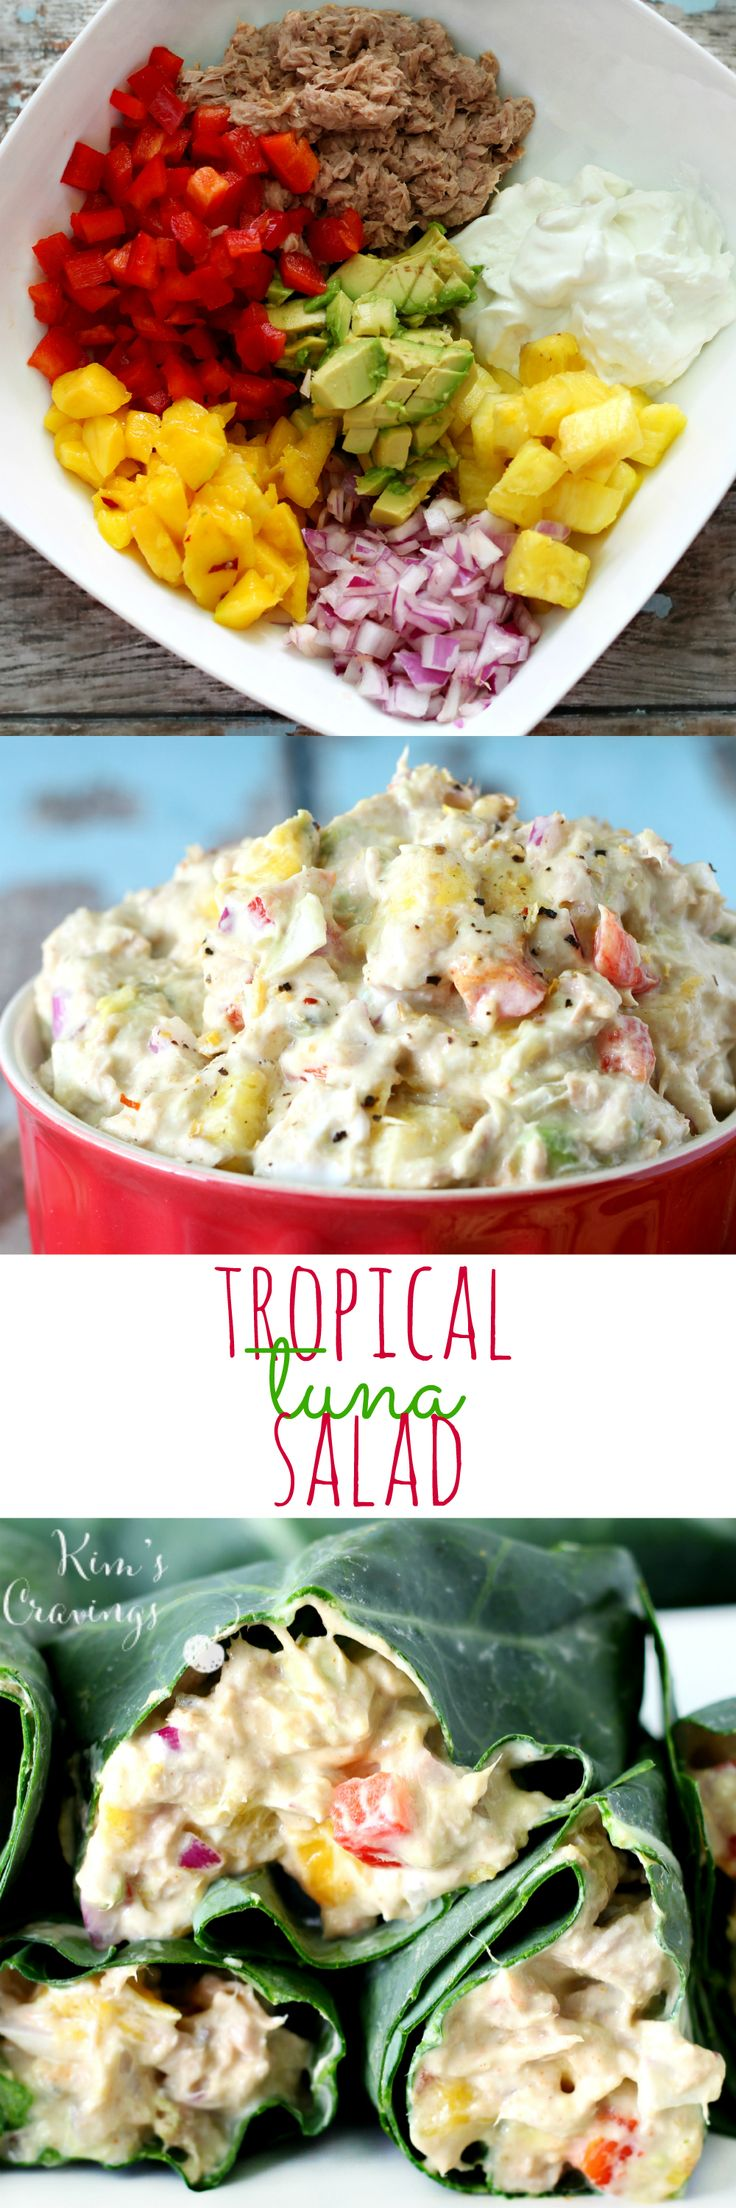 Tropical Tuna Salad- Get your summer on with the deliciousness of mango, pineapple and avocado! (gluten-free, healthy, protein-packed) #TunaStrong #CG